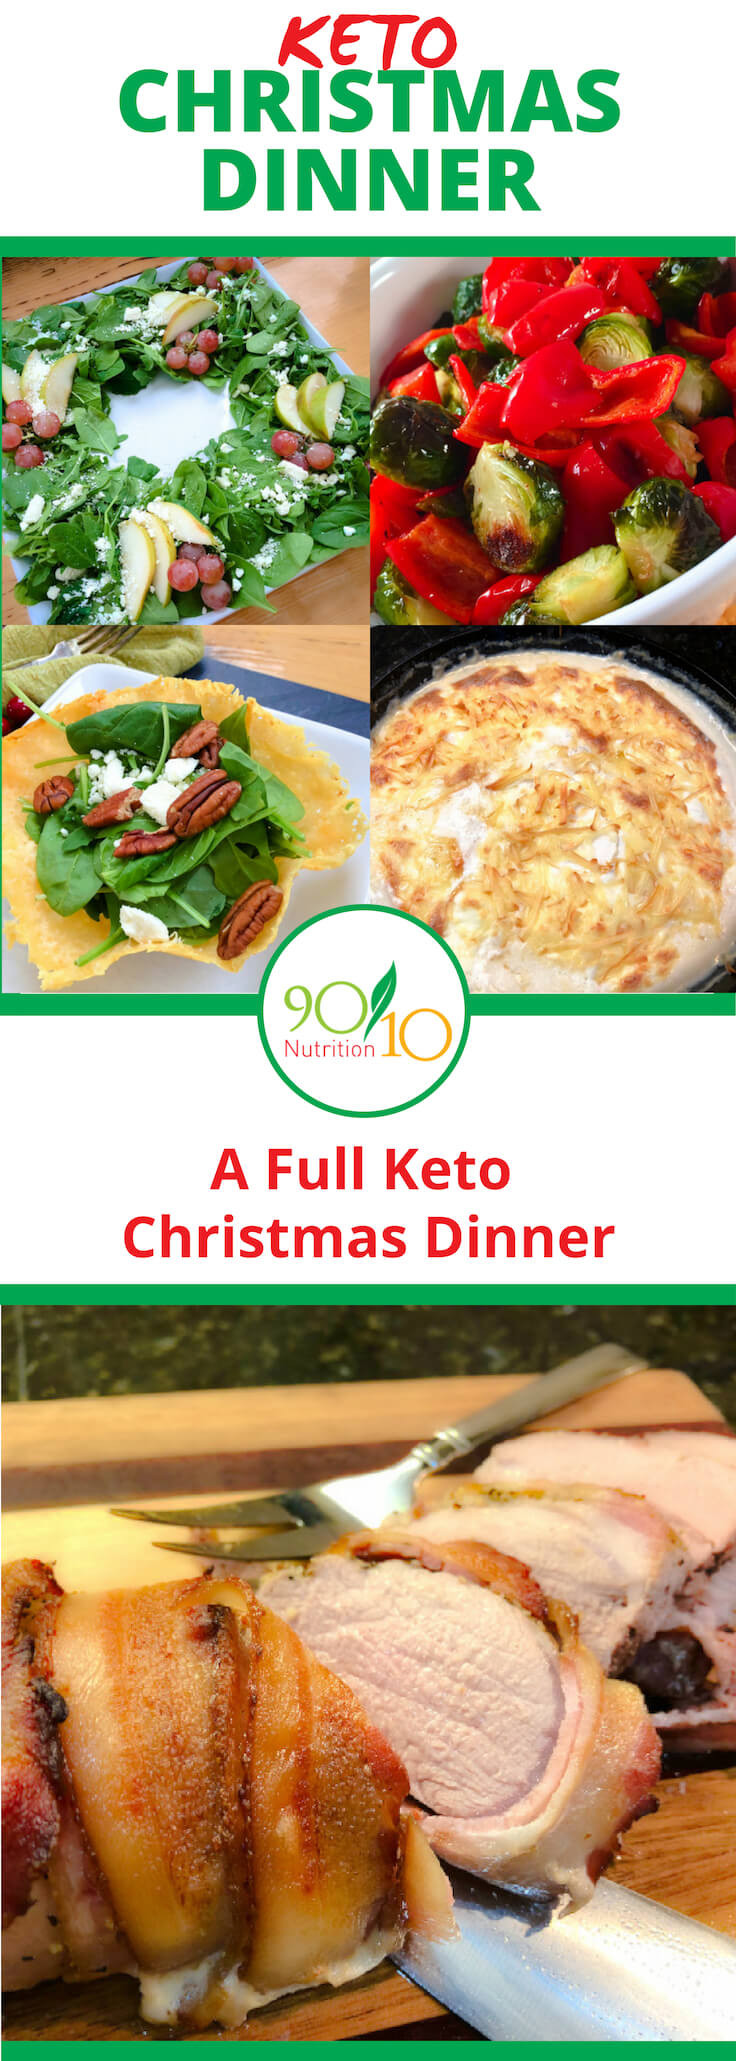 Keto Christmas Dinner  Keto Christmas Dinner Menu Clean Eating 90 10 Nutrition